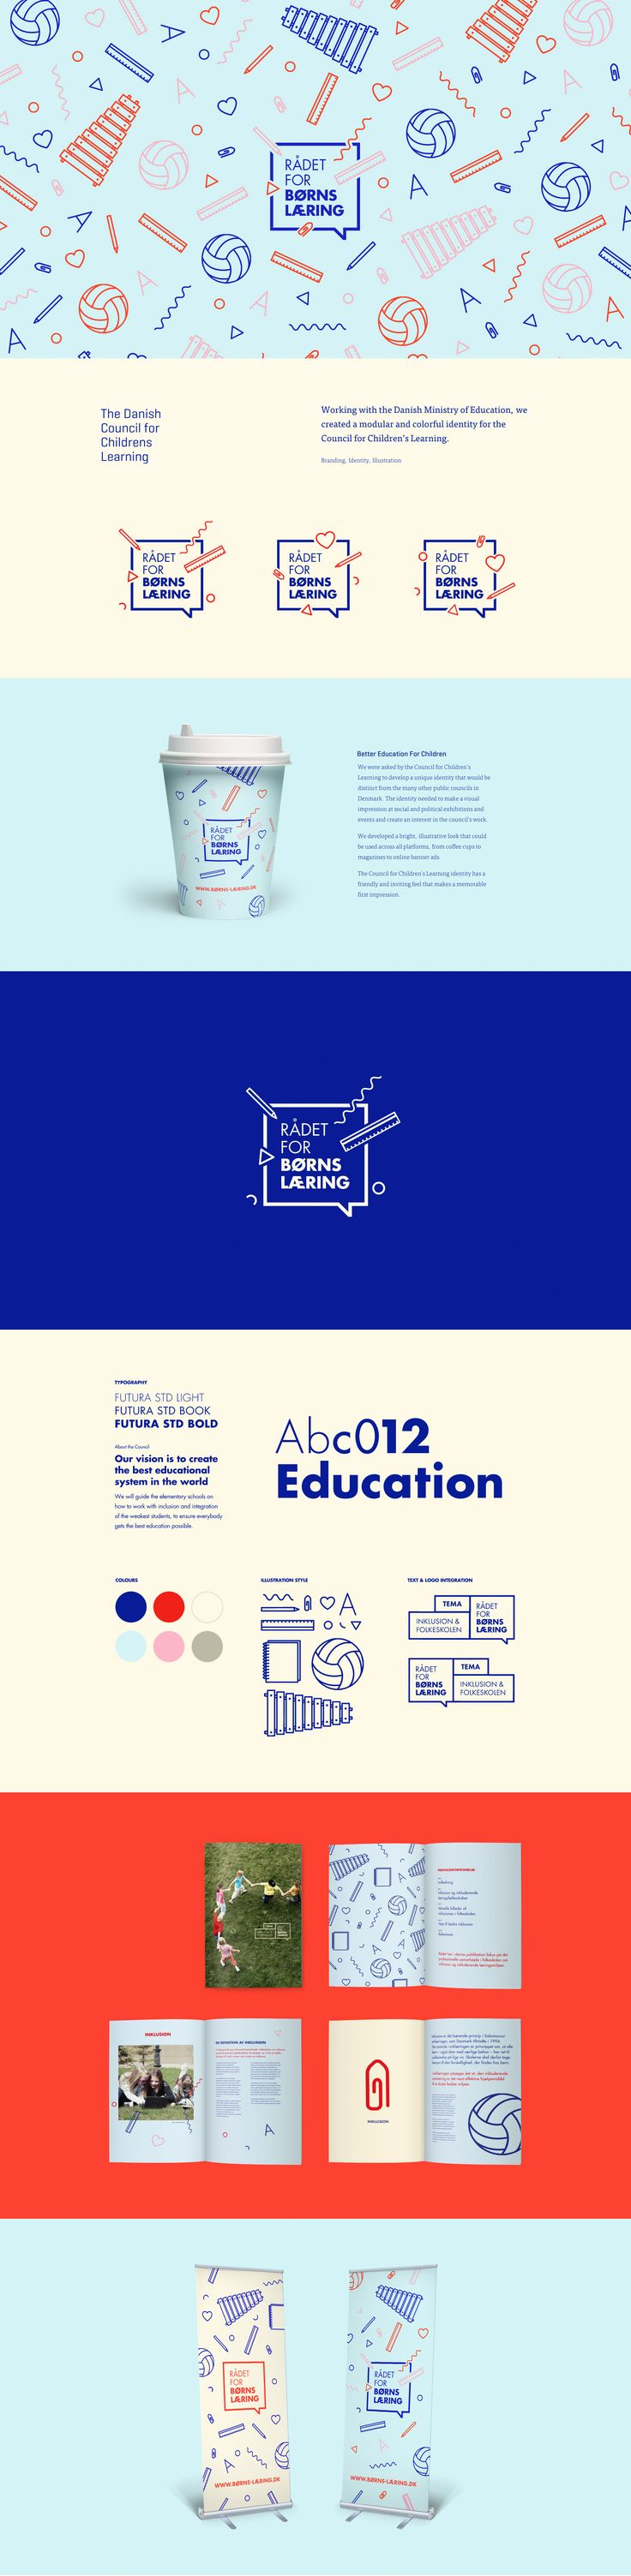 The Danish Council for Childrens Learning Working with the Danish Ministry of Education, we created a modular and colorful identity for the Council for Children's Learning.